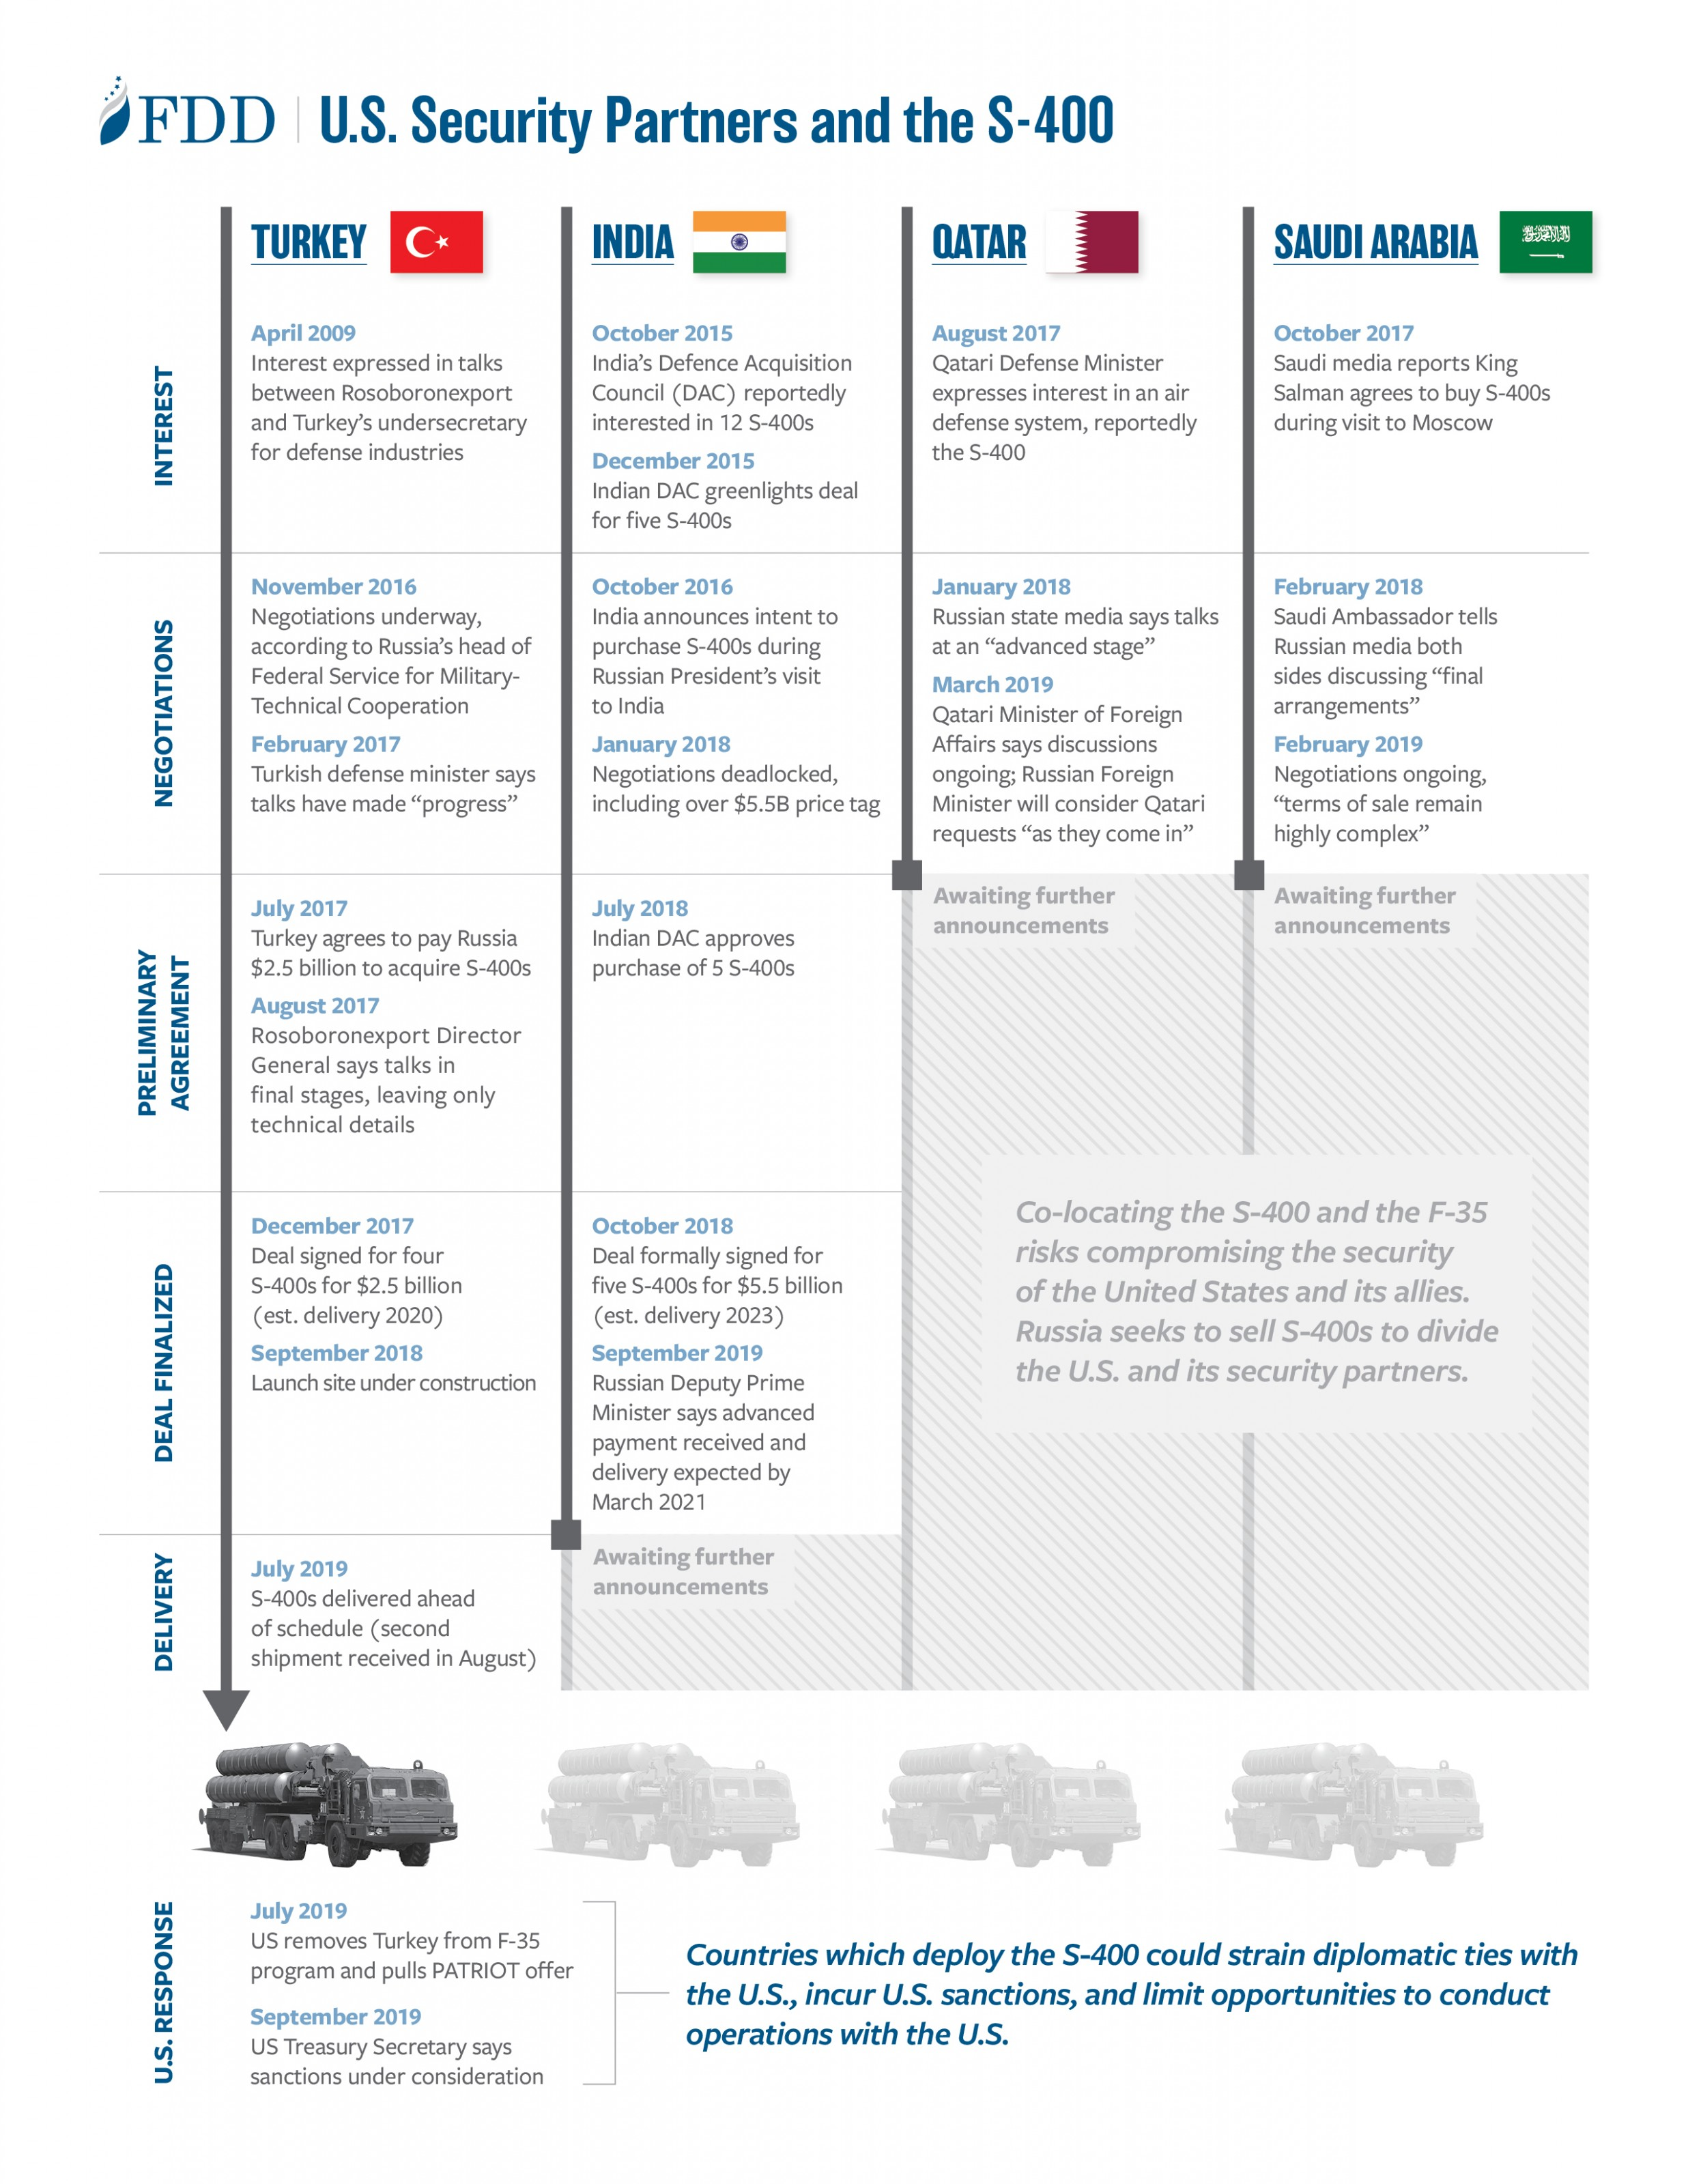 fdd-infographic-S400-timeline